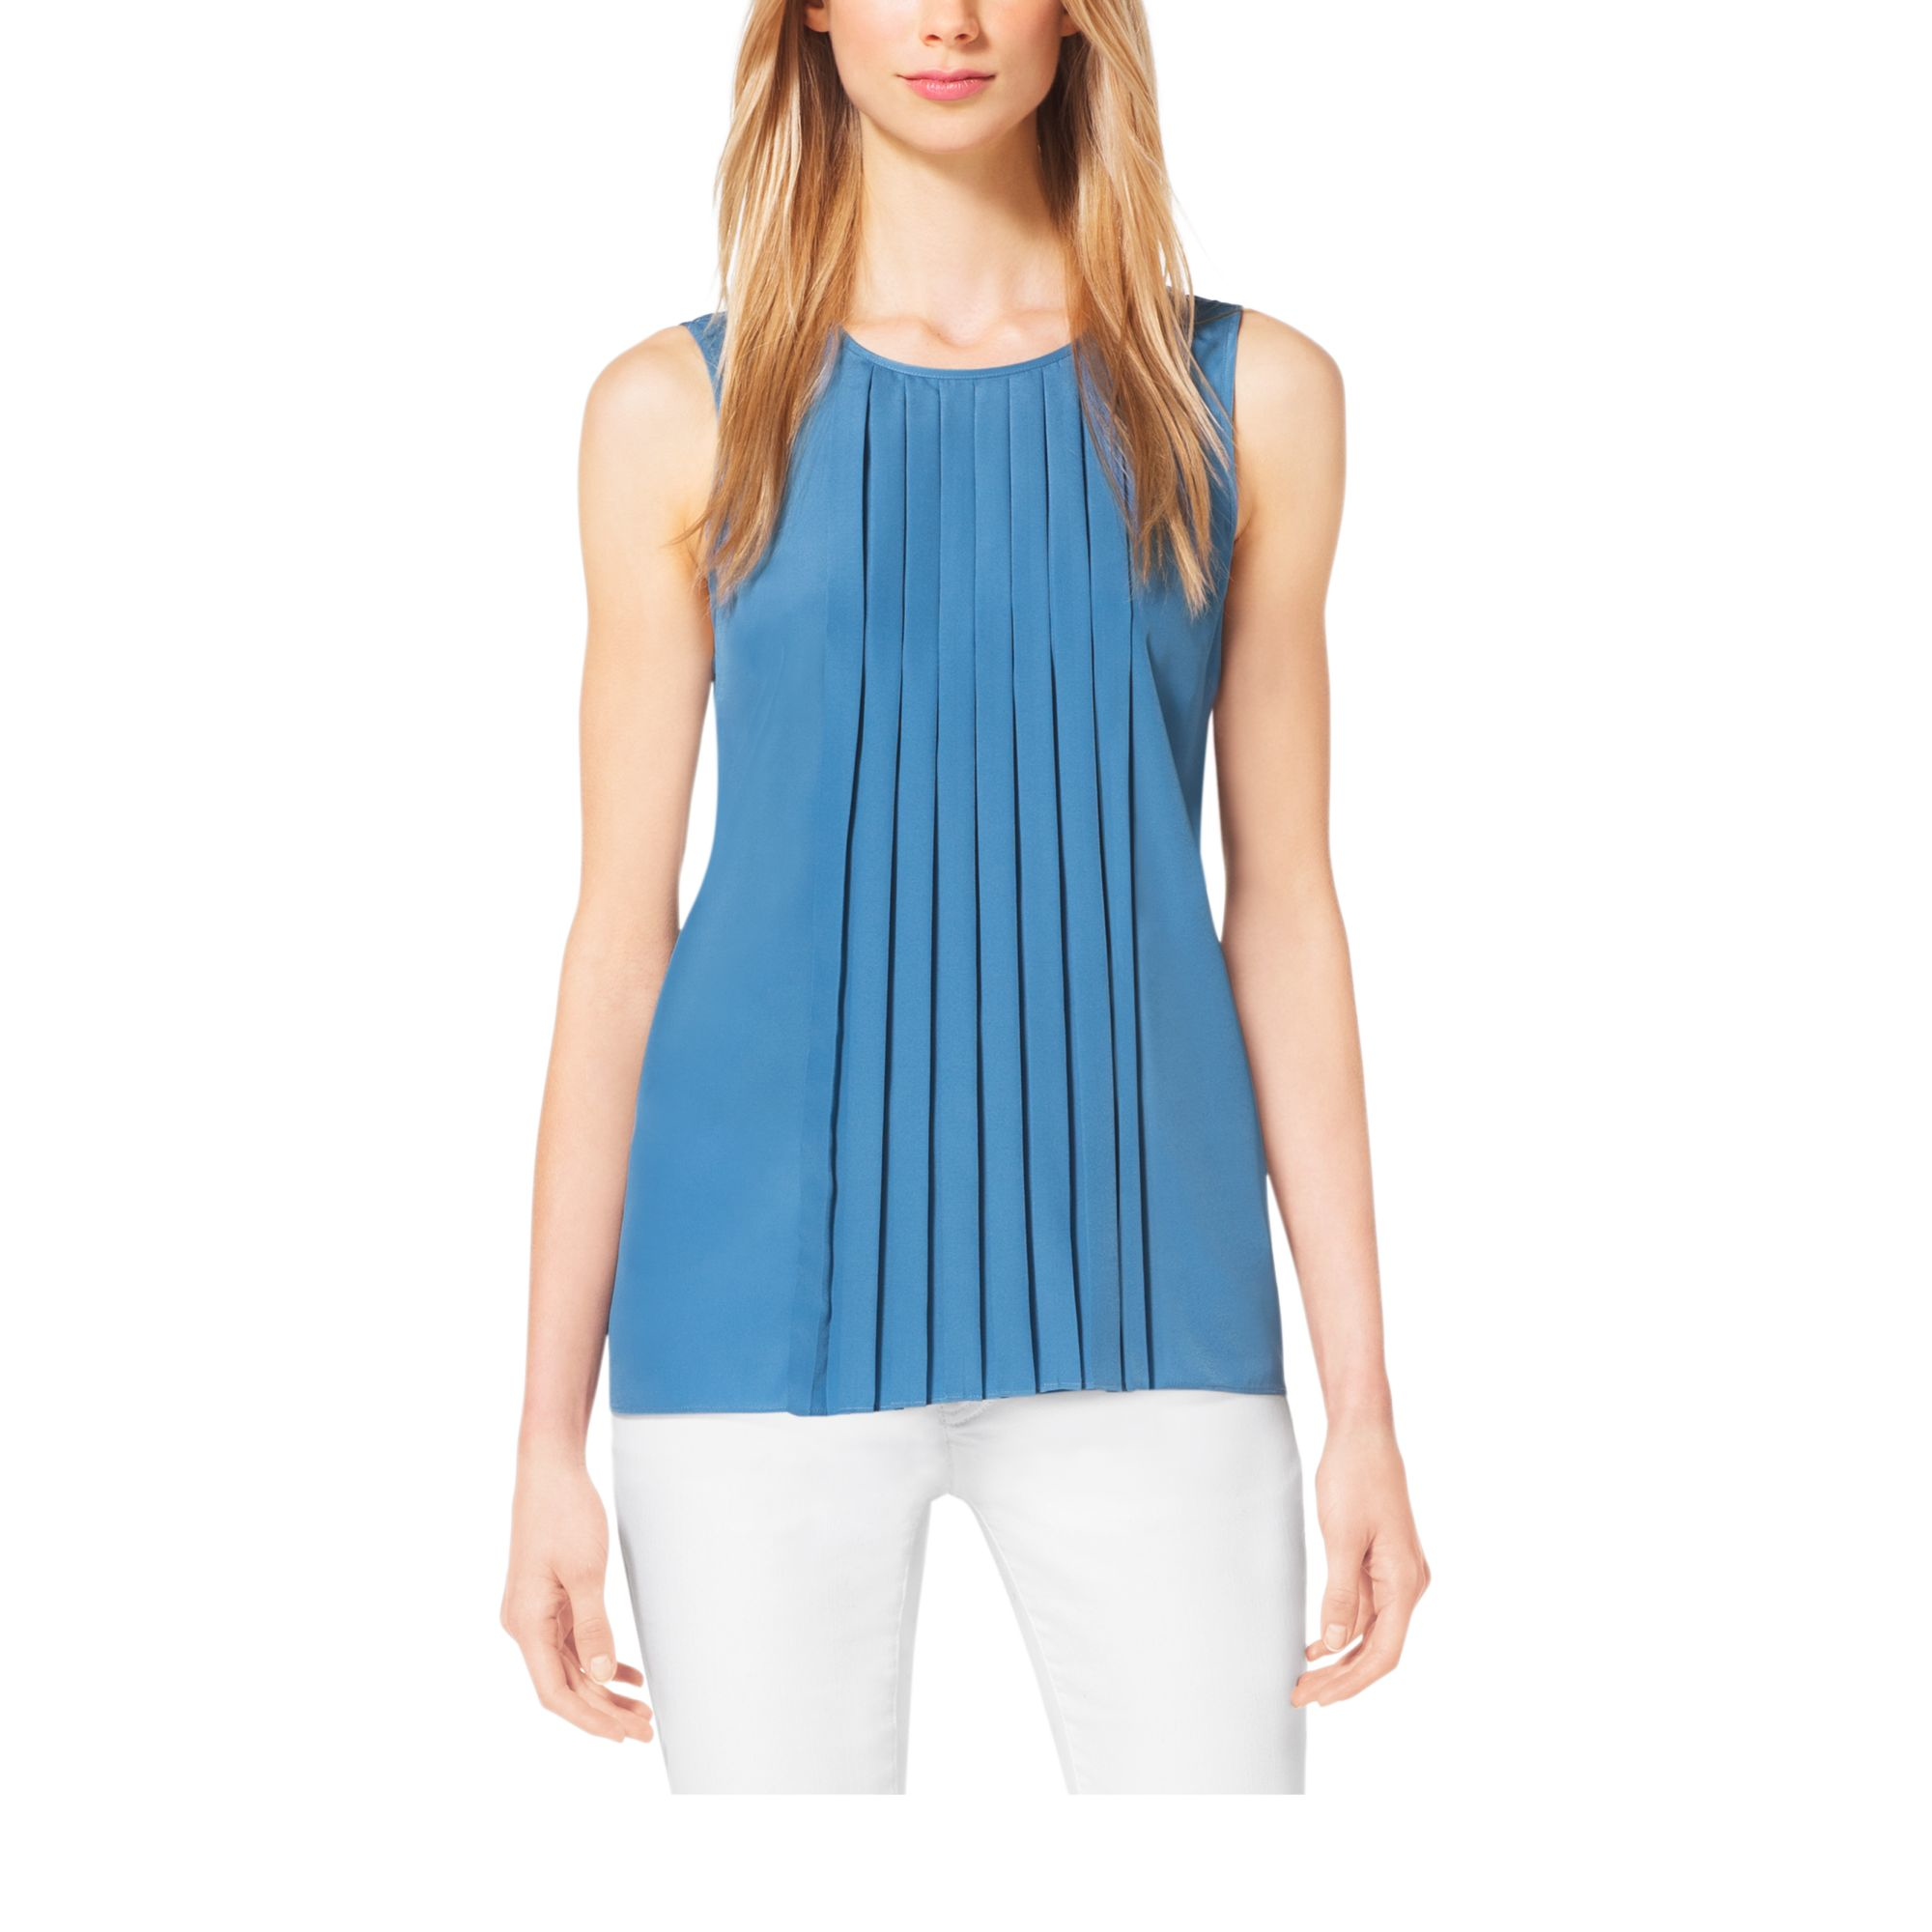 97c82404f5a68 Lyst - Michael Kors Pleated Crepe Blouse in Blue